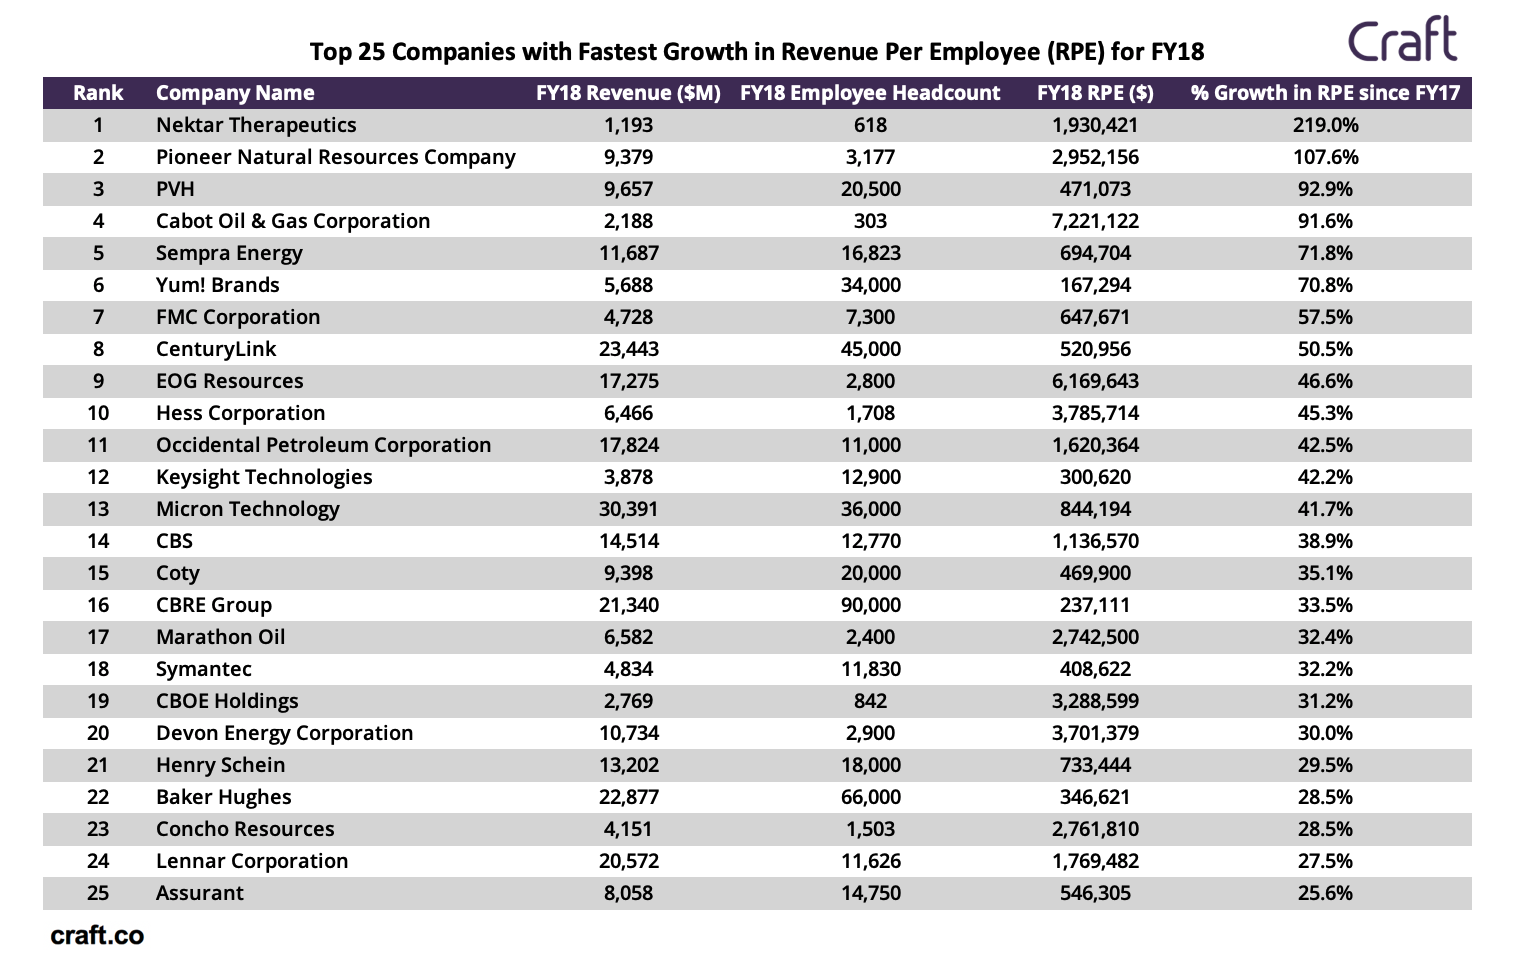 What Industry Has The Fastest Growing Revenue Per Employee?